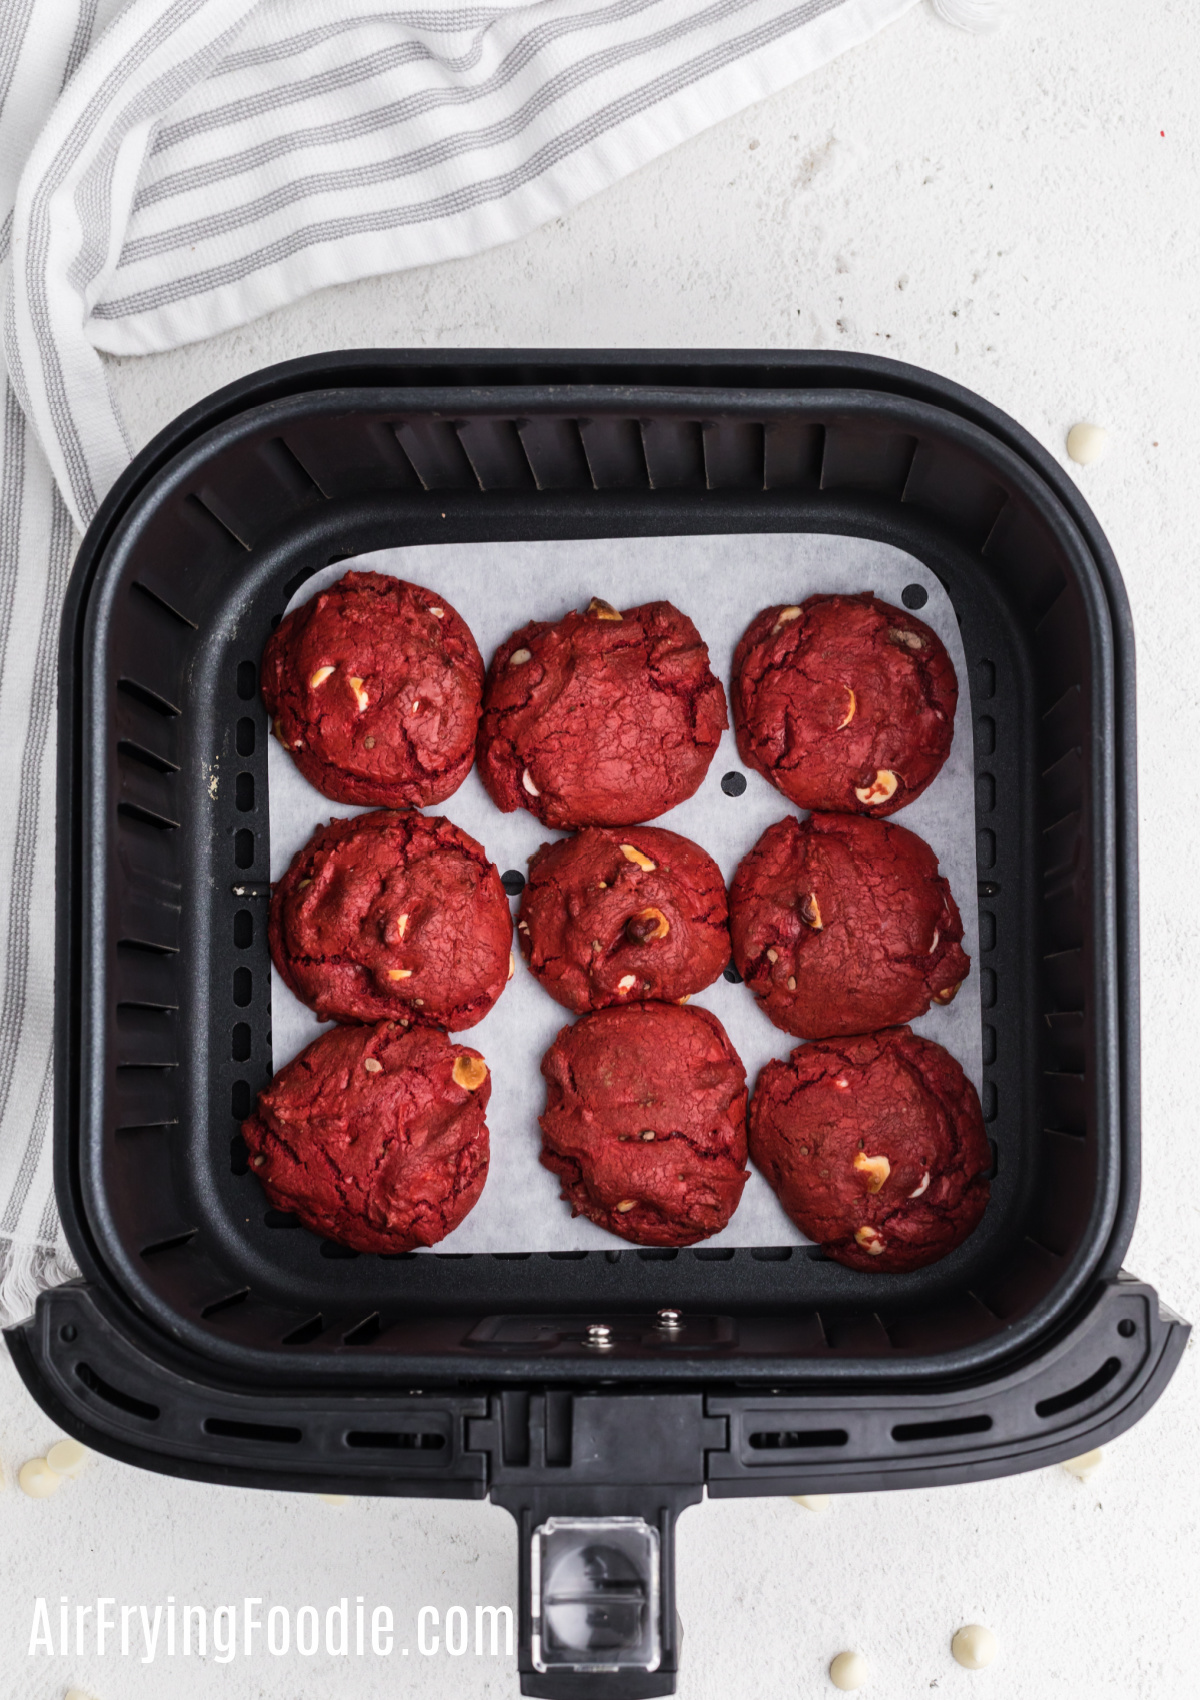 Red Velvet Cake Mix cookies in the air fryer basket on top of parchment paper.